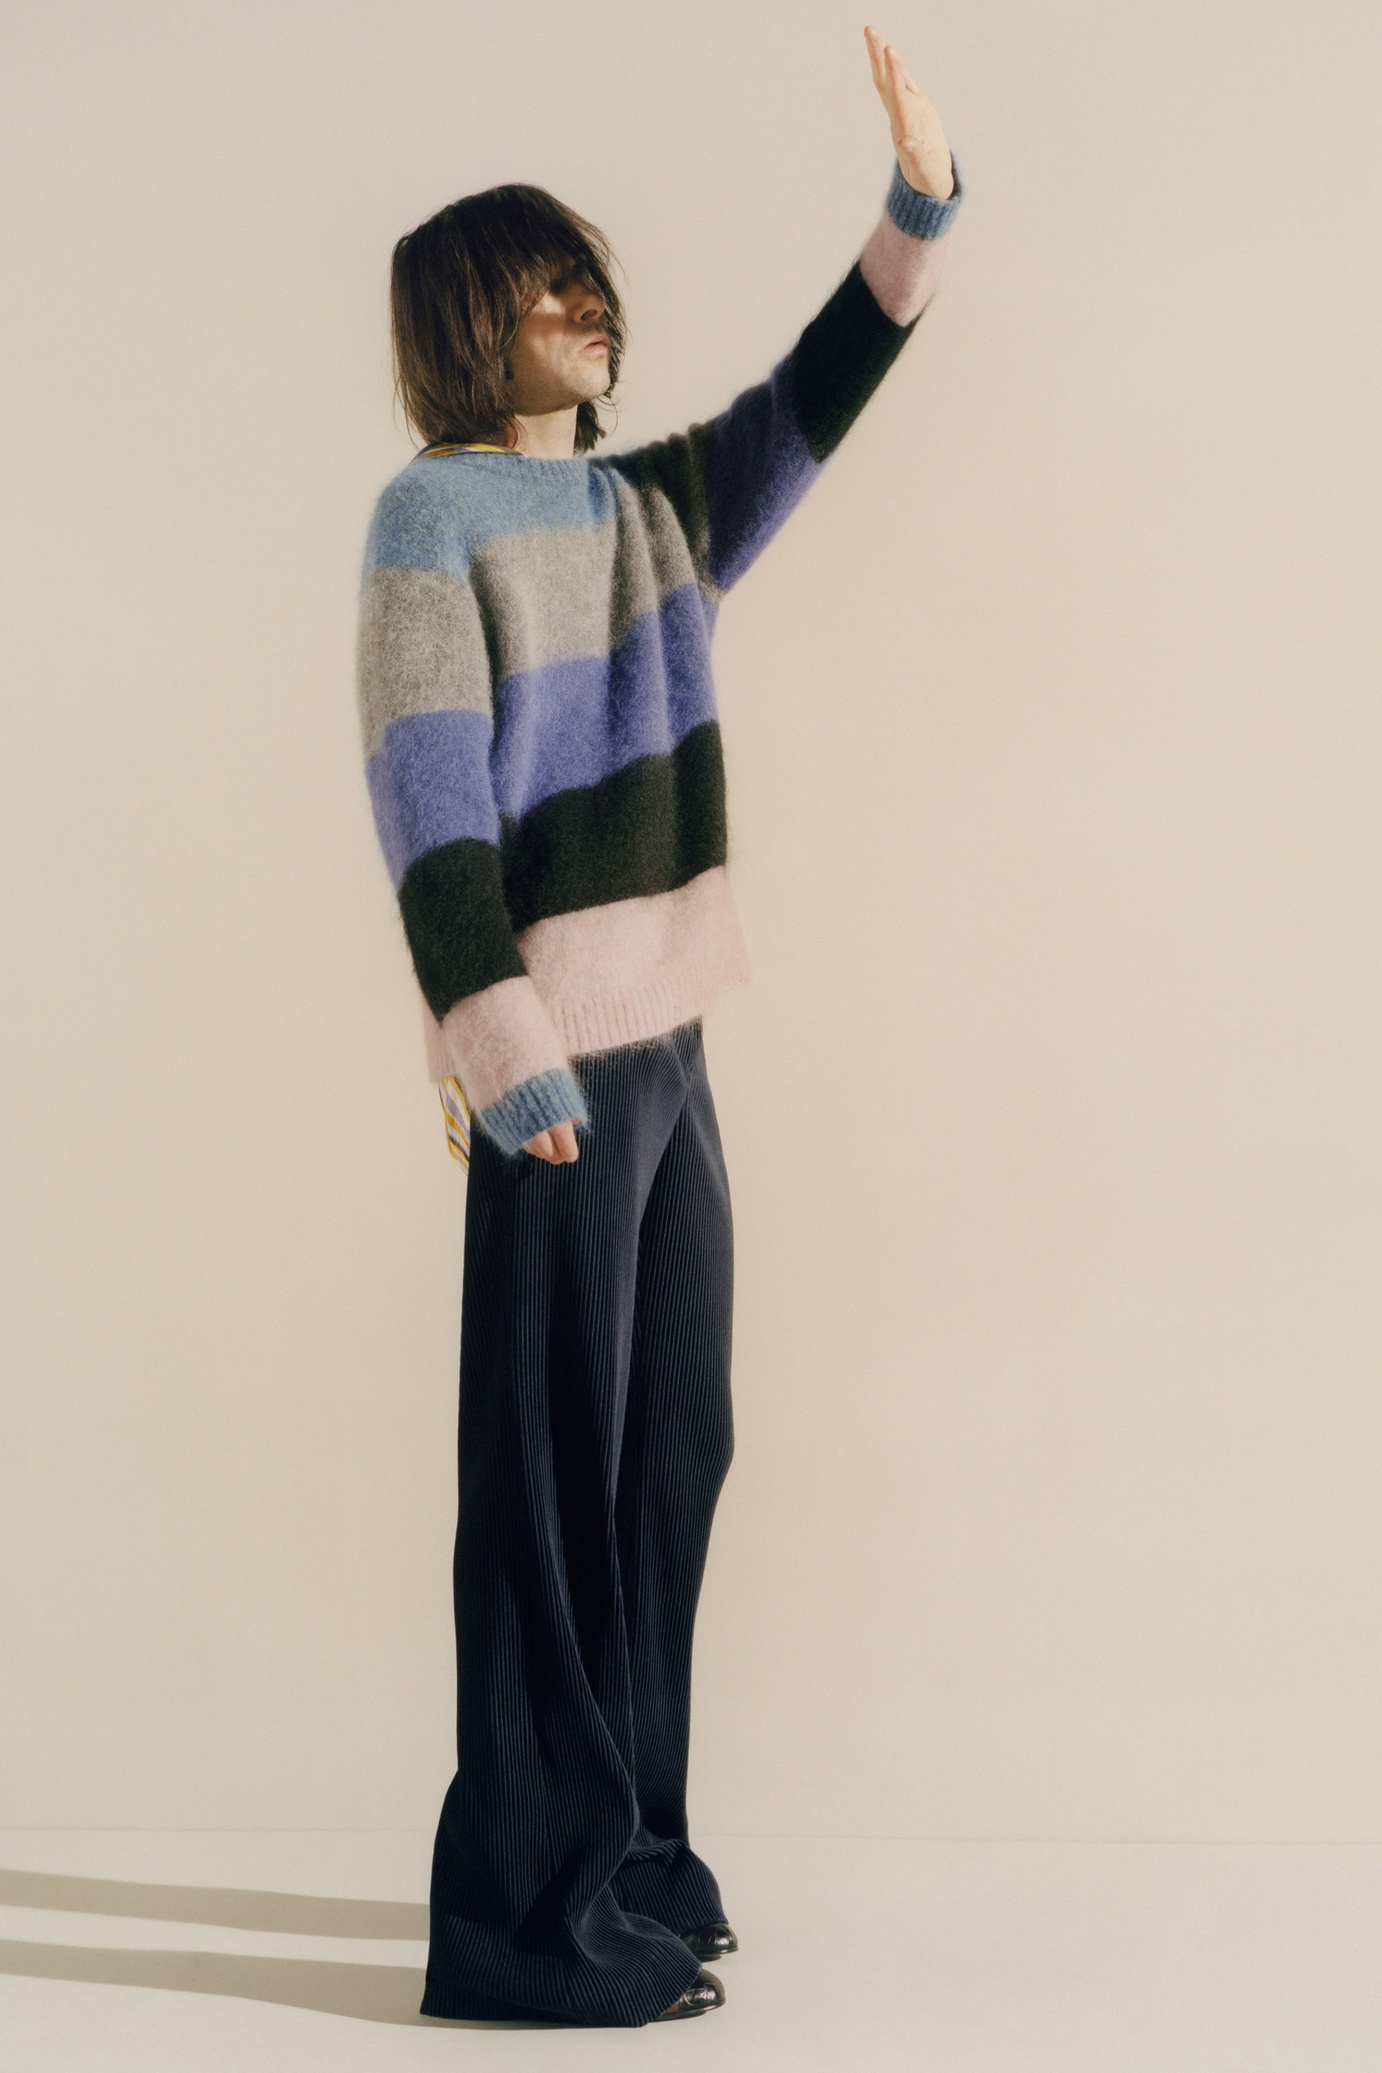 07_acne_studios_pre_fall_17_jpg_9990_jpeg_7361.jpeg_north_1382x_black